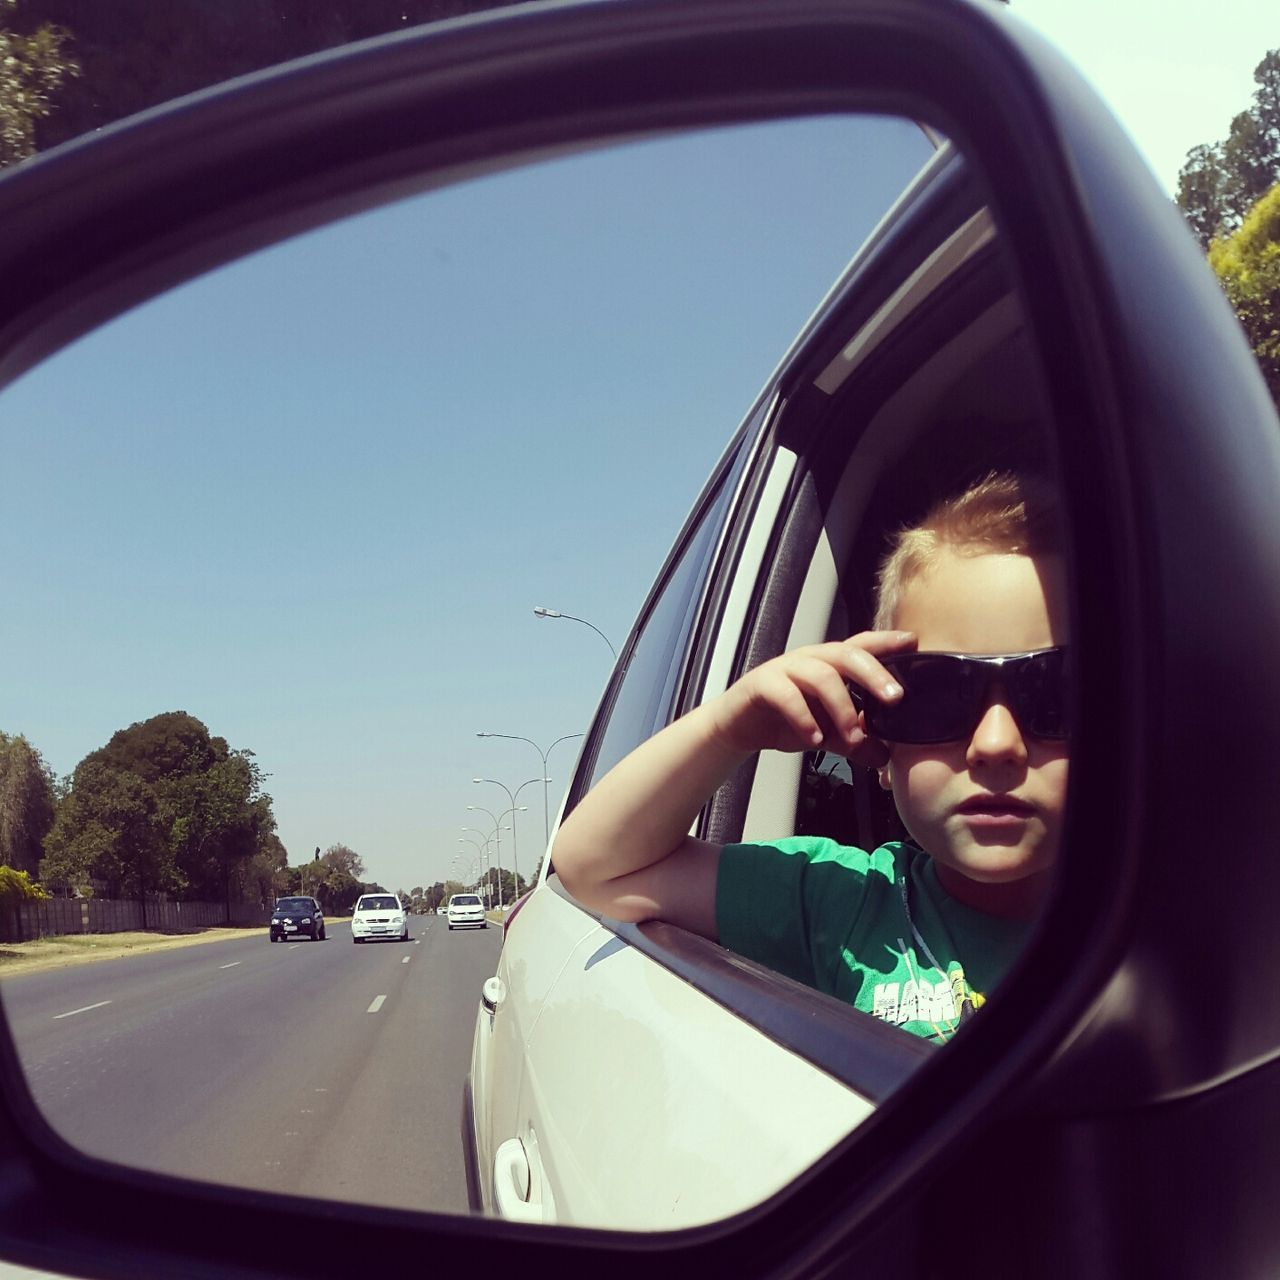 Reflection of boy wearing sunglasses in rear-view mirror of car